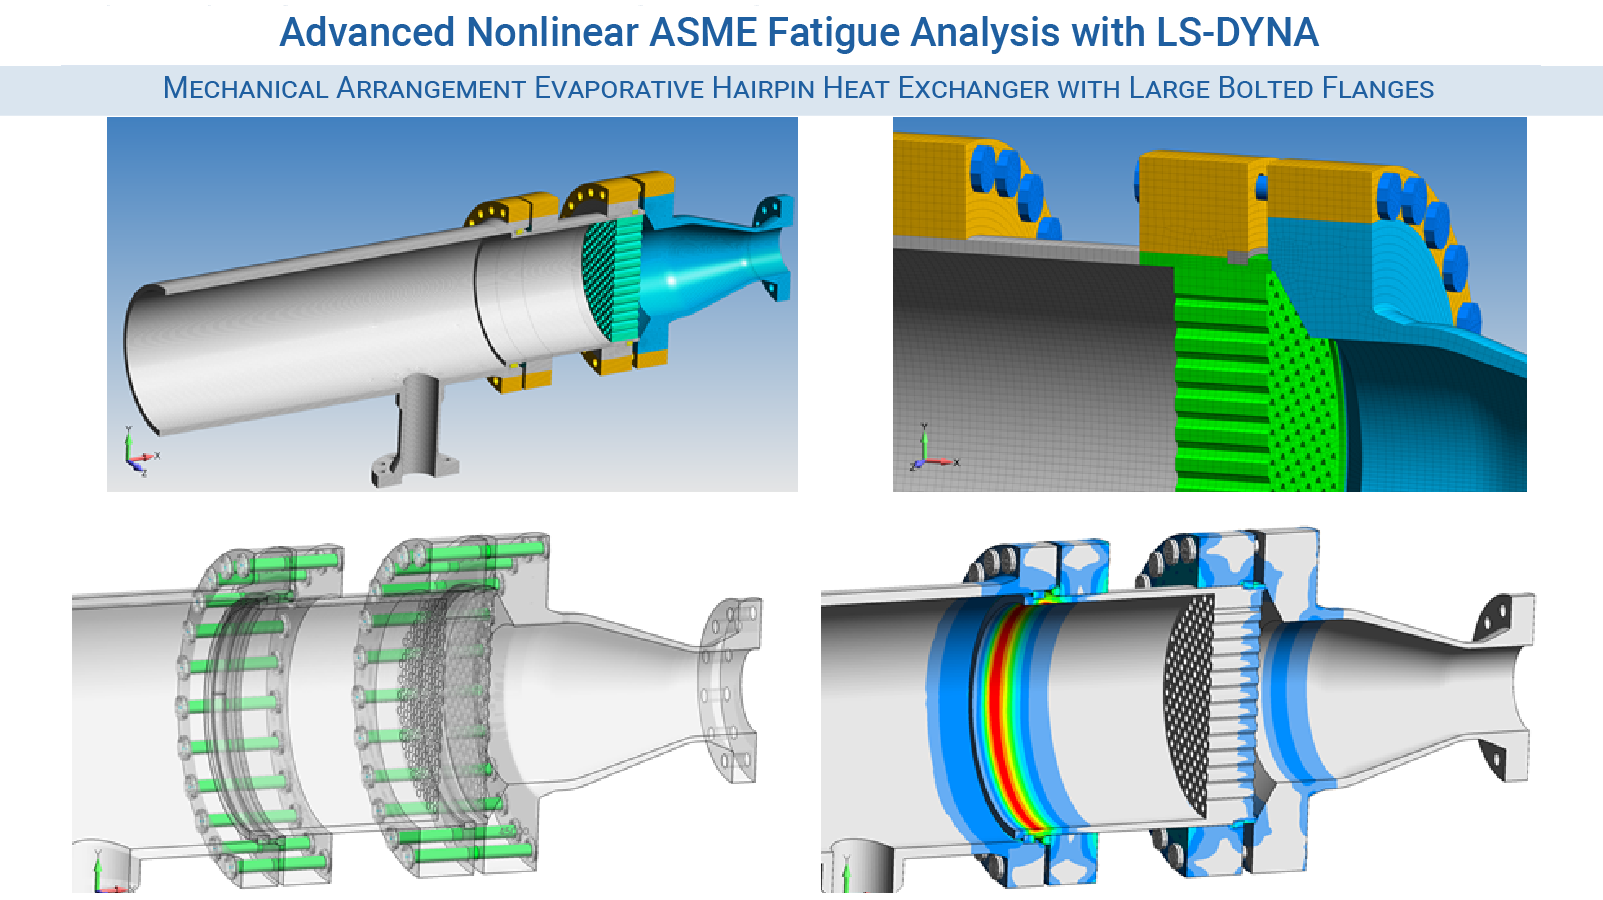 LS-DYNA Consulting Services - Advanced Nonlinear ASME Fatigue Analysis with LS-DYNA